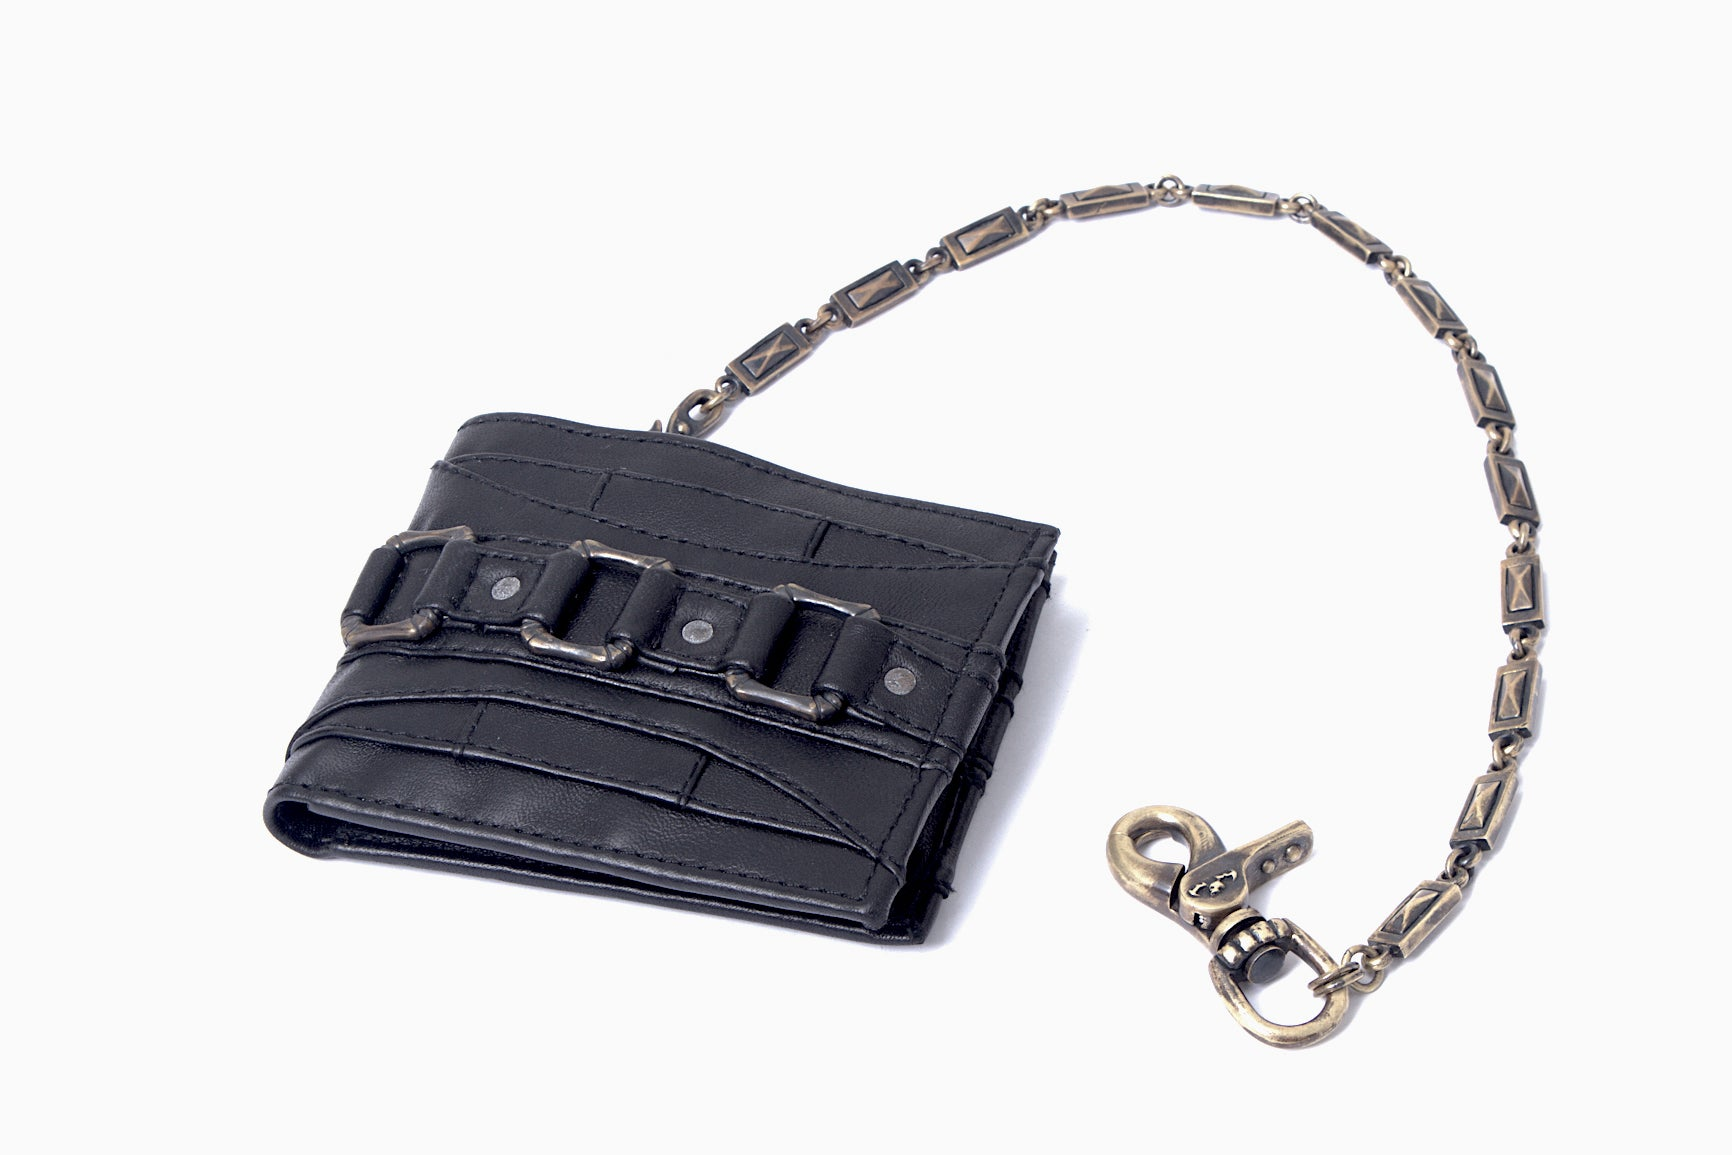 Dark star wallet with chain